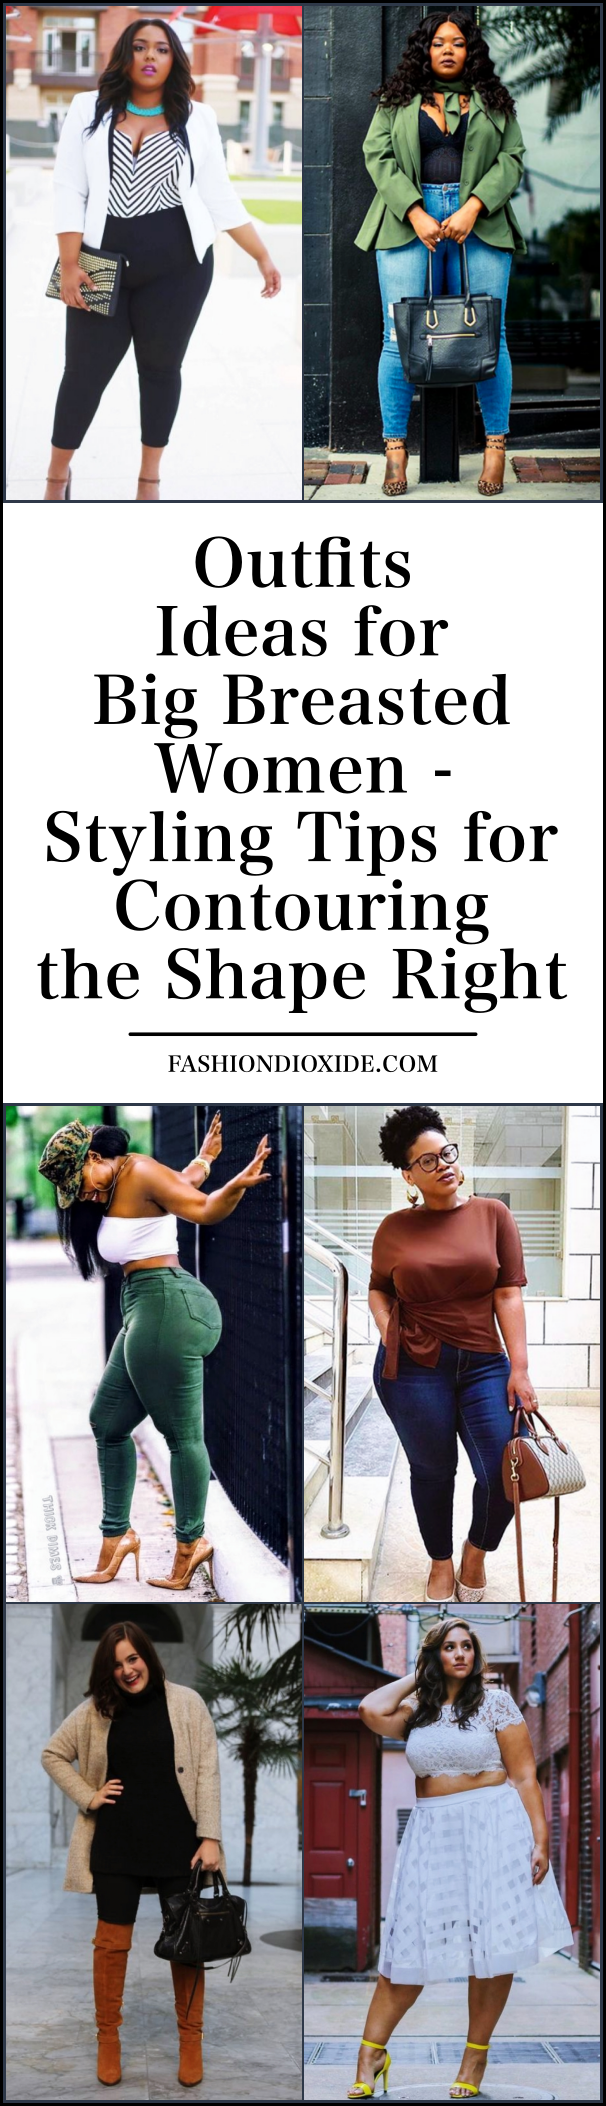 Outfits Ideas for Big Breasted Women | Styling Tips for Contouring the Shape Right